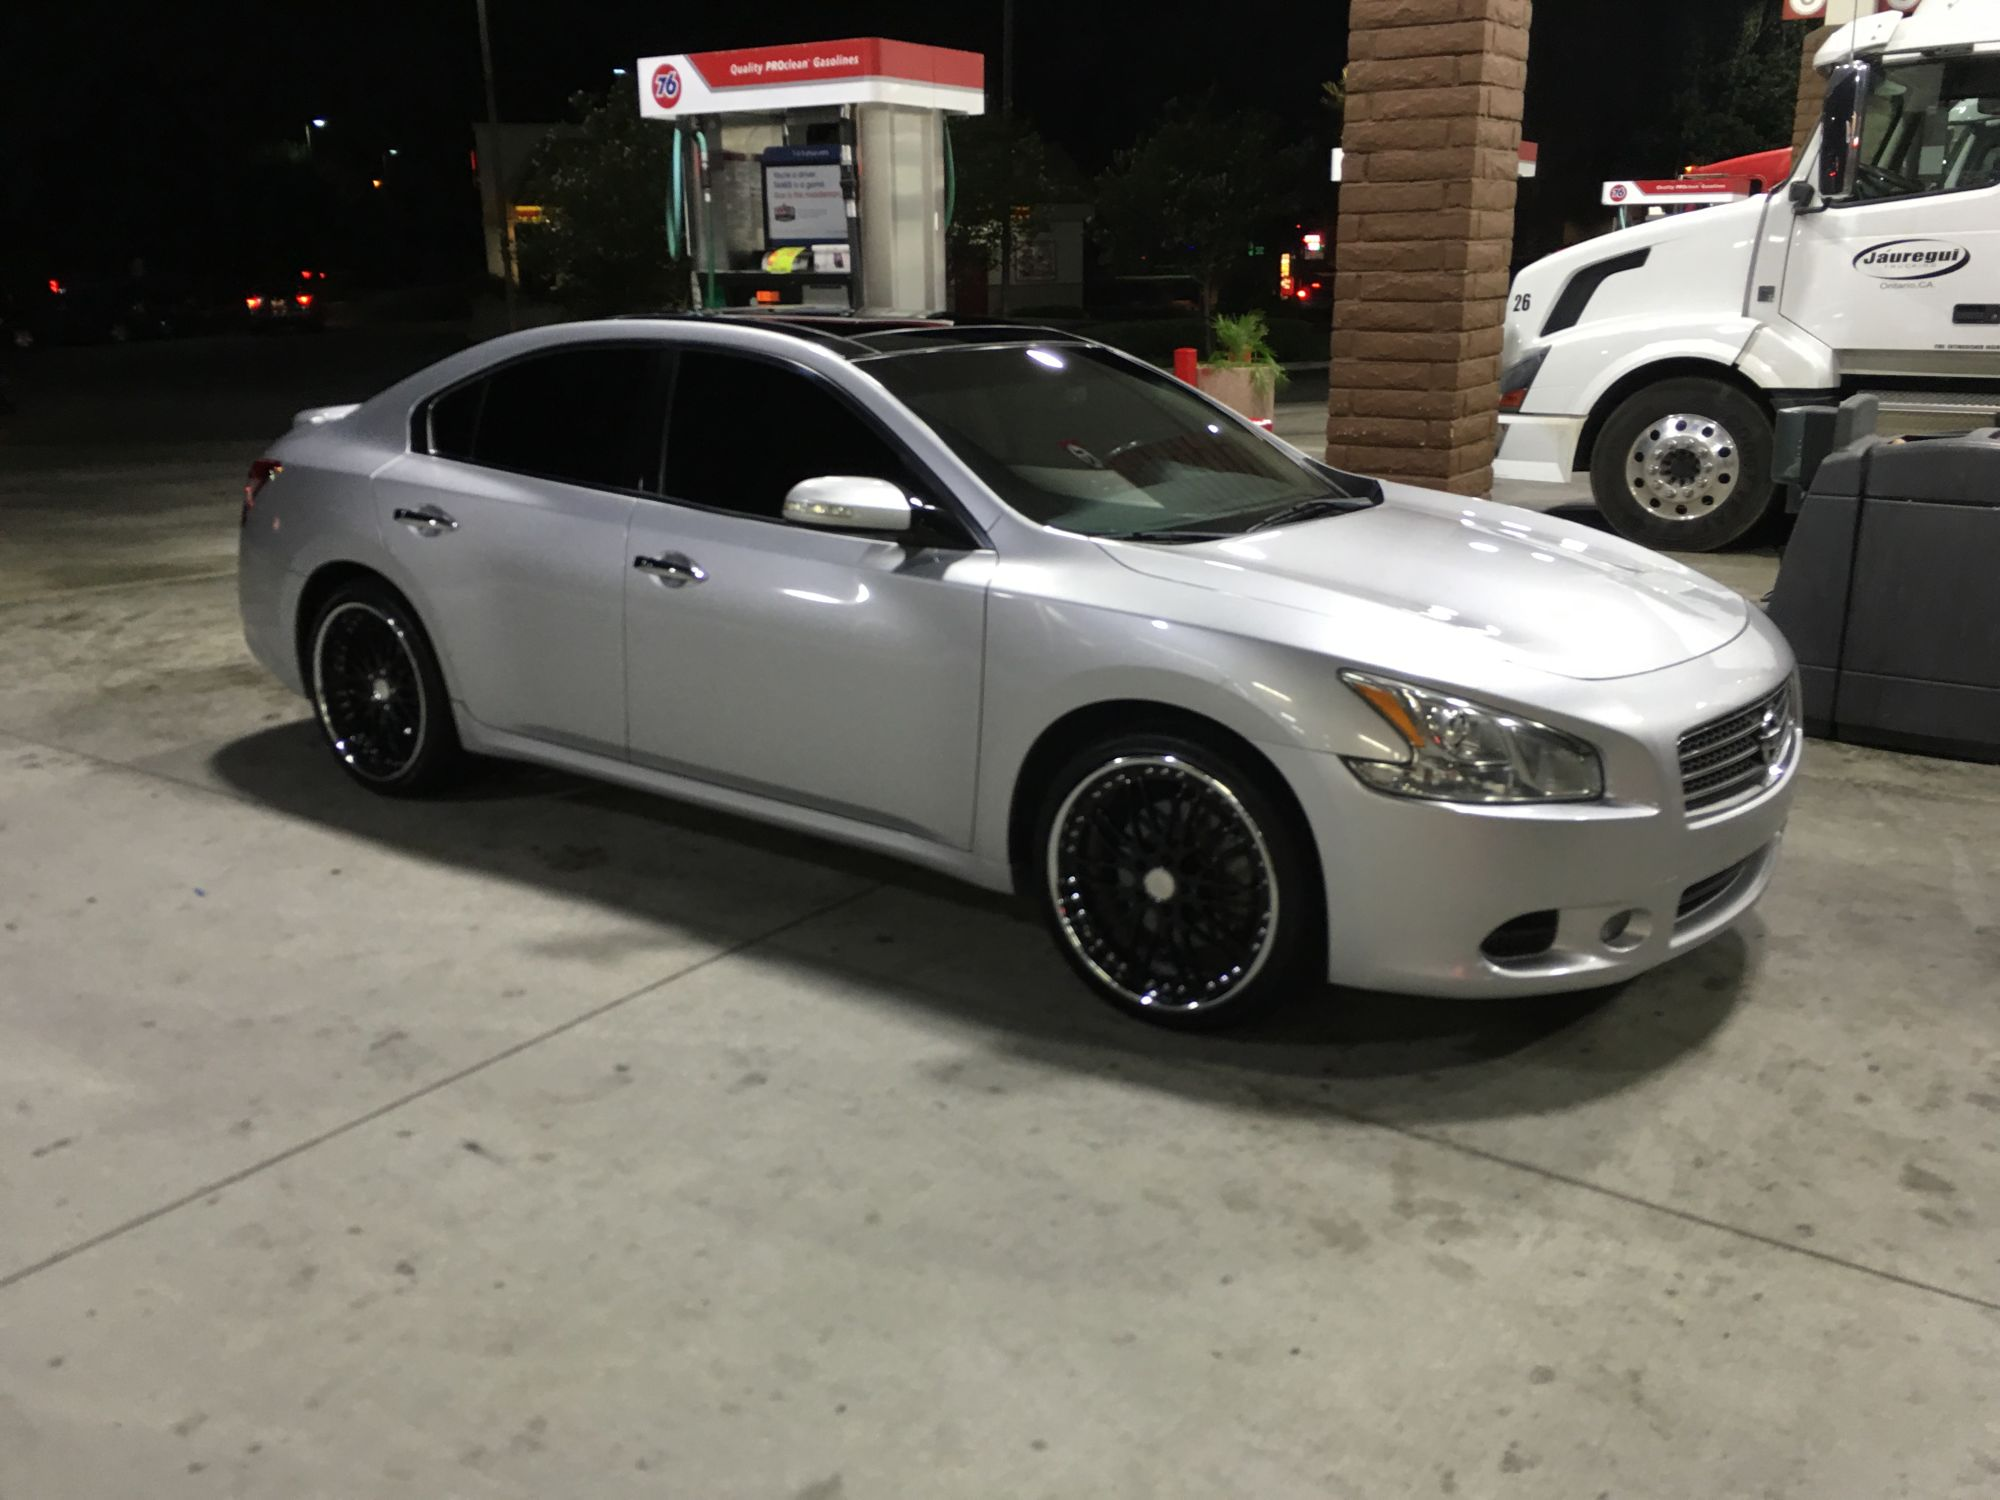 photo 1 Nissan Maxima custom wheels Makaveli  20x, ET , tire size 225/35 R20. x ET 275/30 R